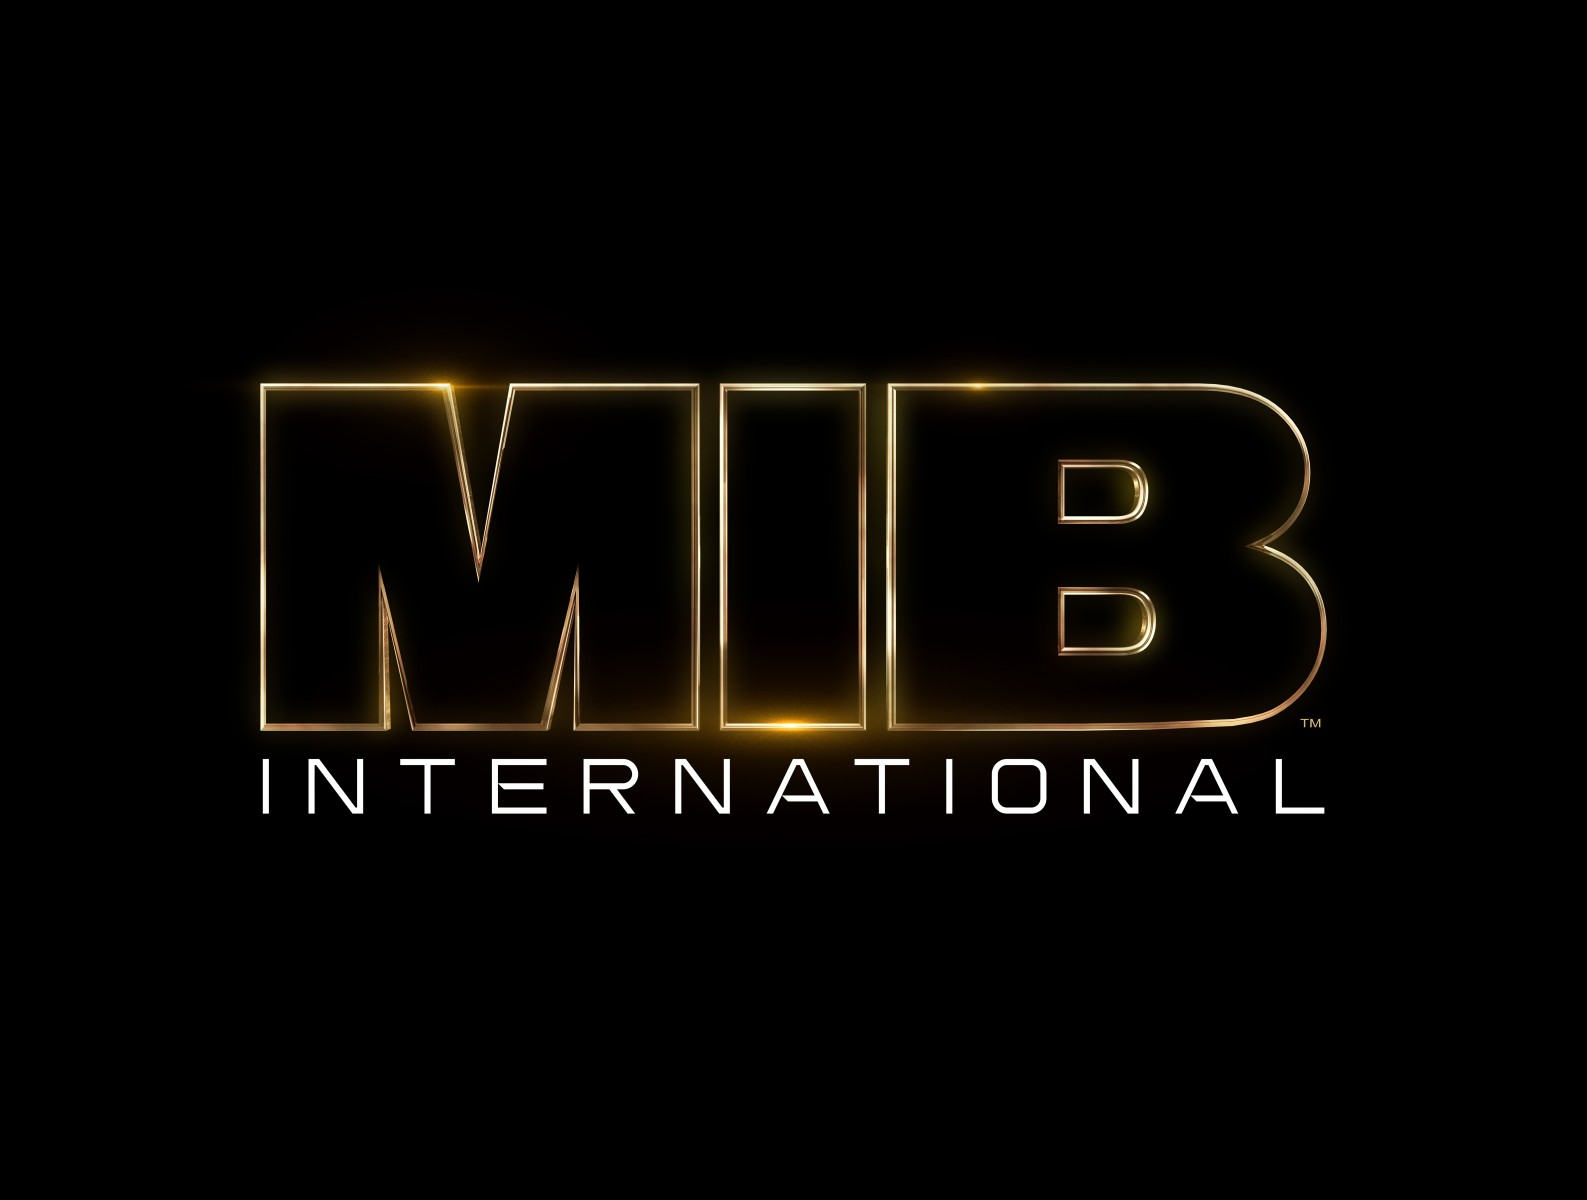 Global - Men in Black Logo